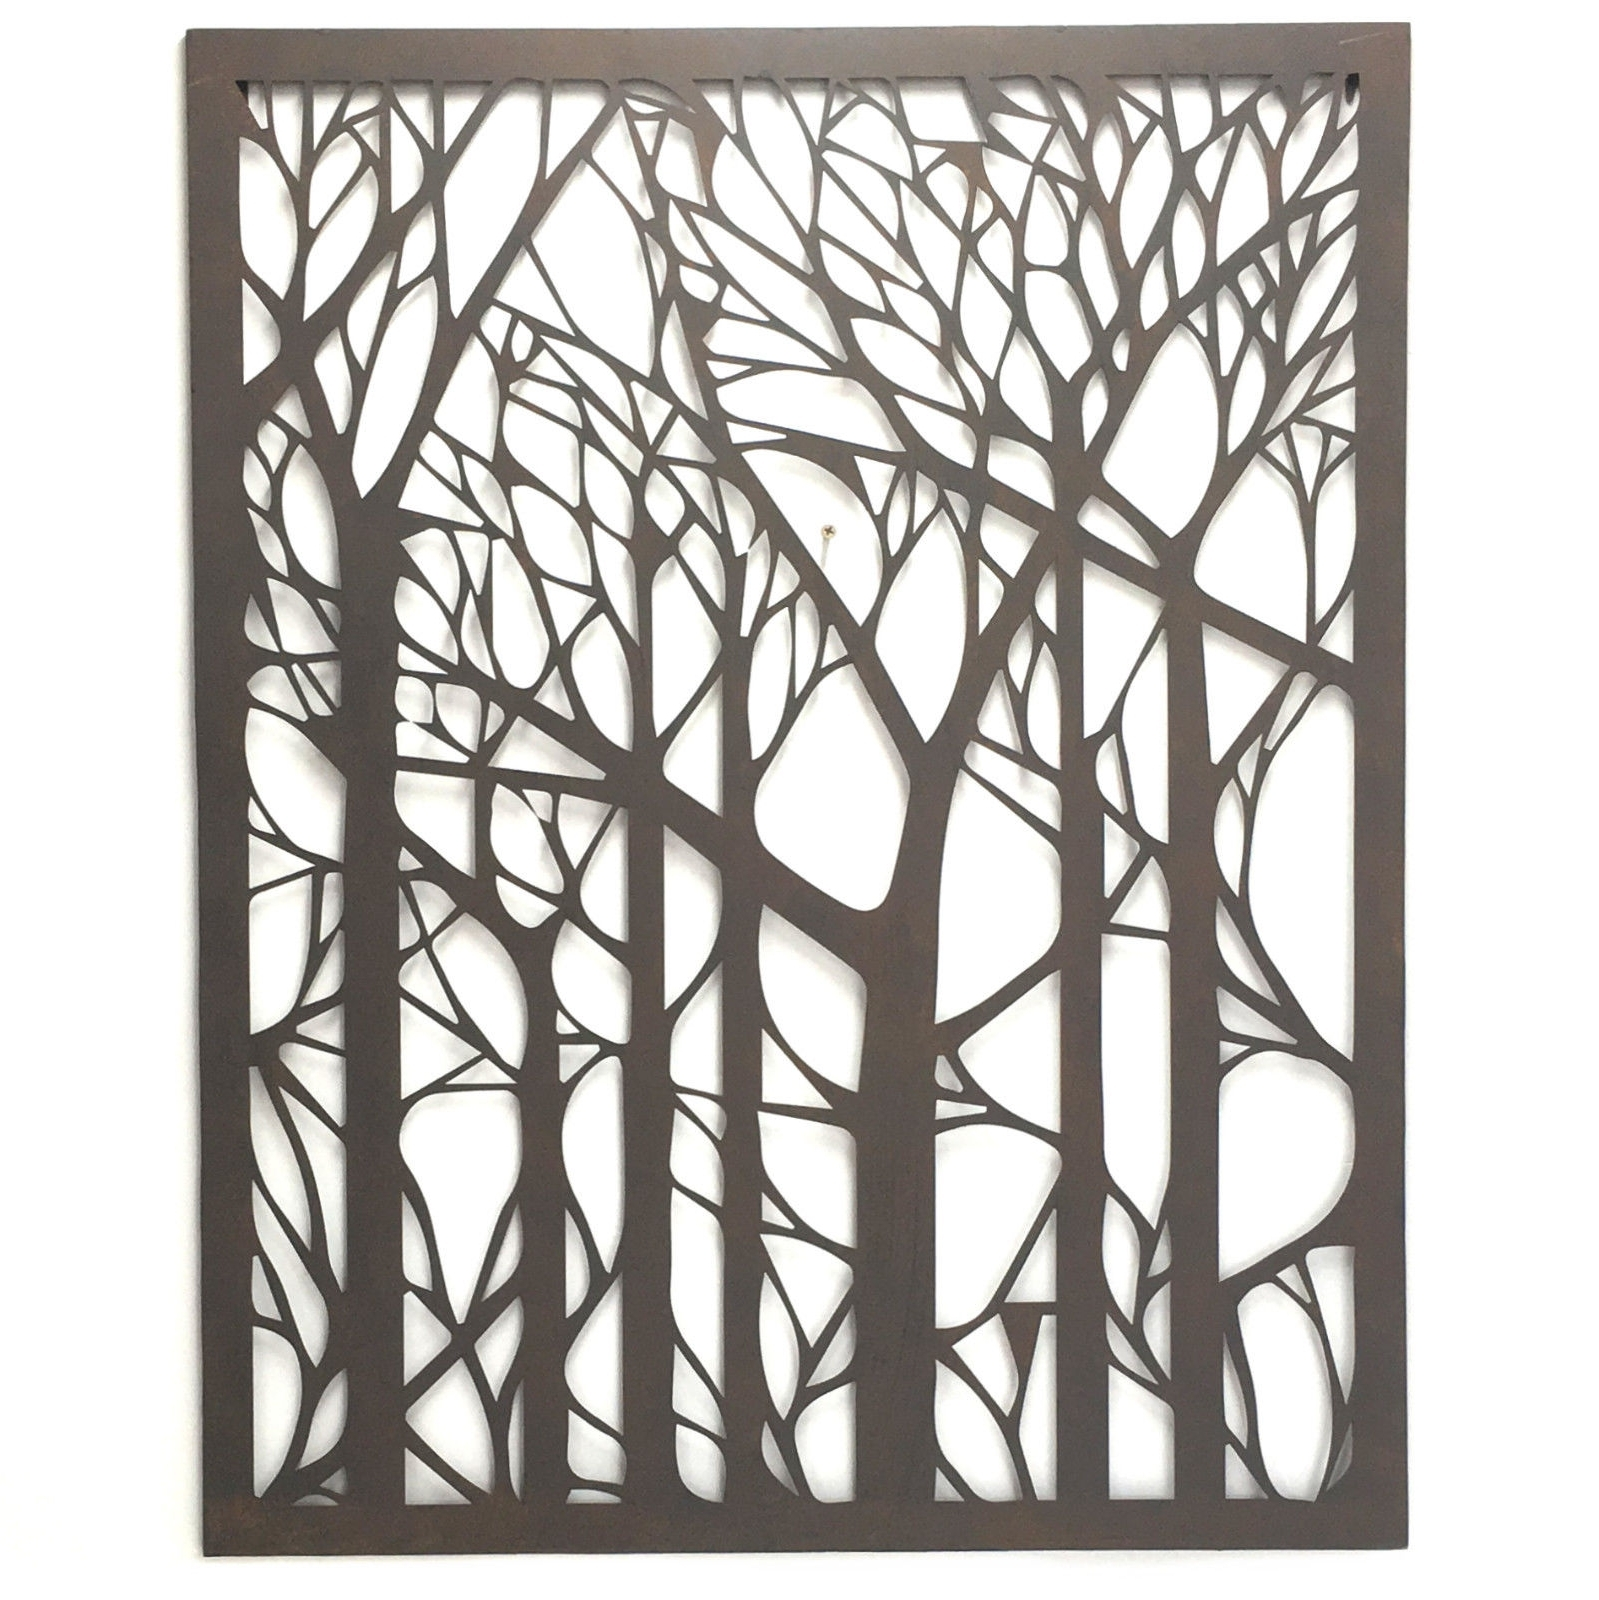 Large Metal Wall Art For Outdoor Within Most Current Wall Art Designs: Outdoor Wall Art Metal Tree Metal Wall Art (View 7 of 15)